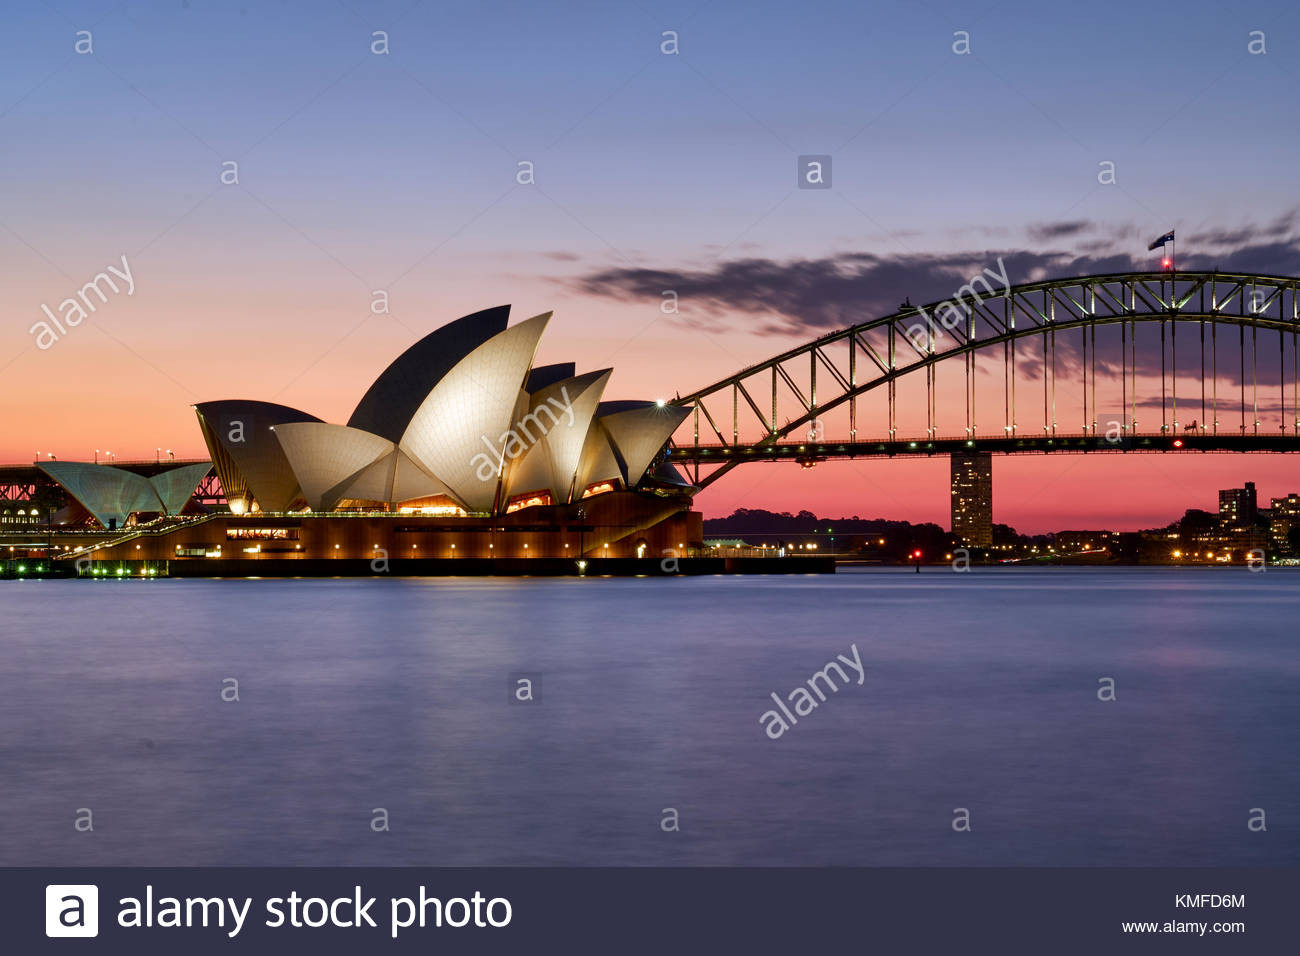 The Sydney Opera House and Harbour bridge at sunset. Sydney, Australia - Stock Image